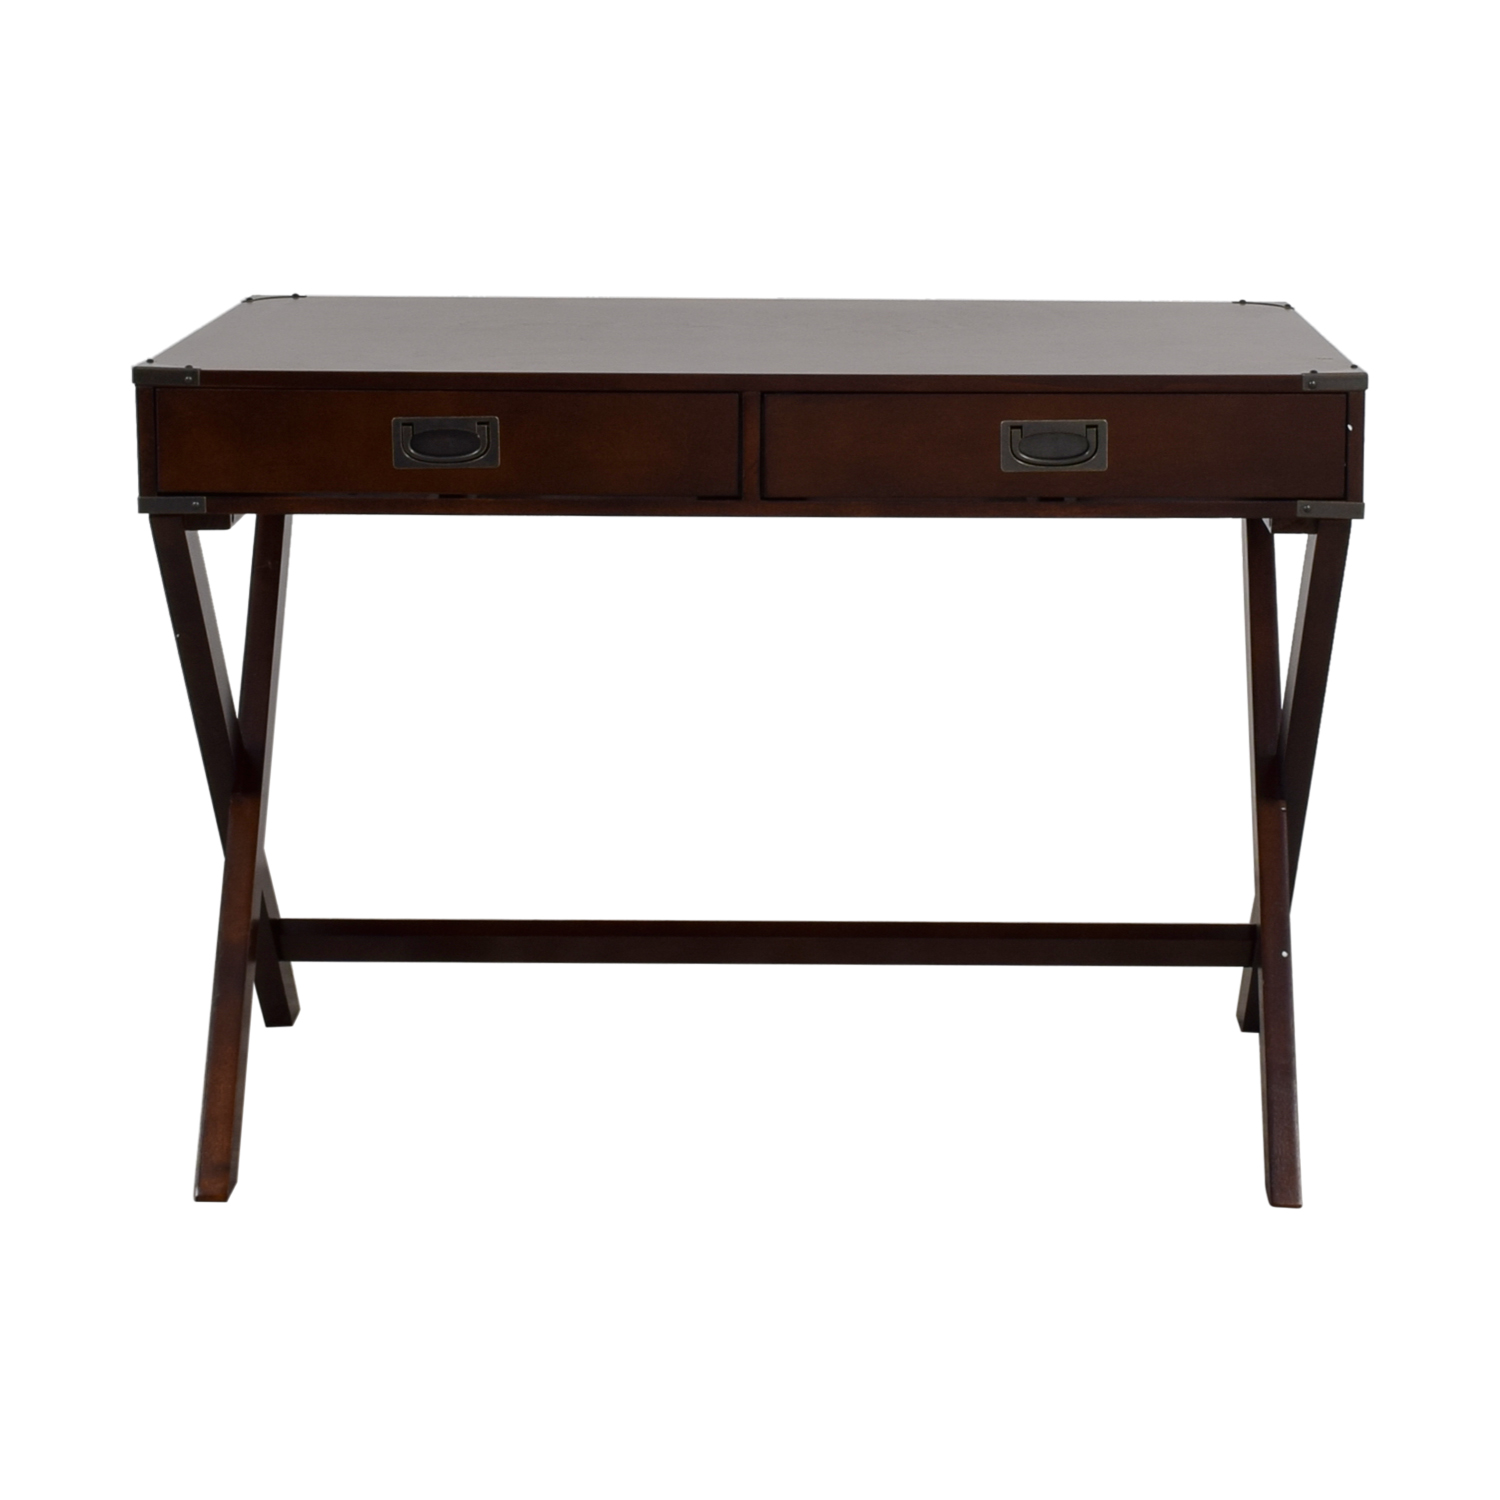 Home fice Desks Second hand Home fice Desks on sale